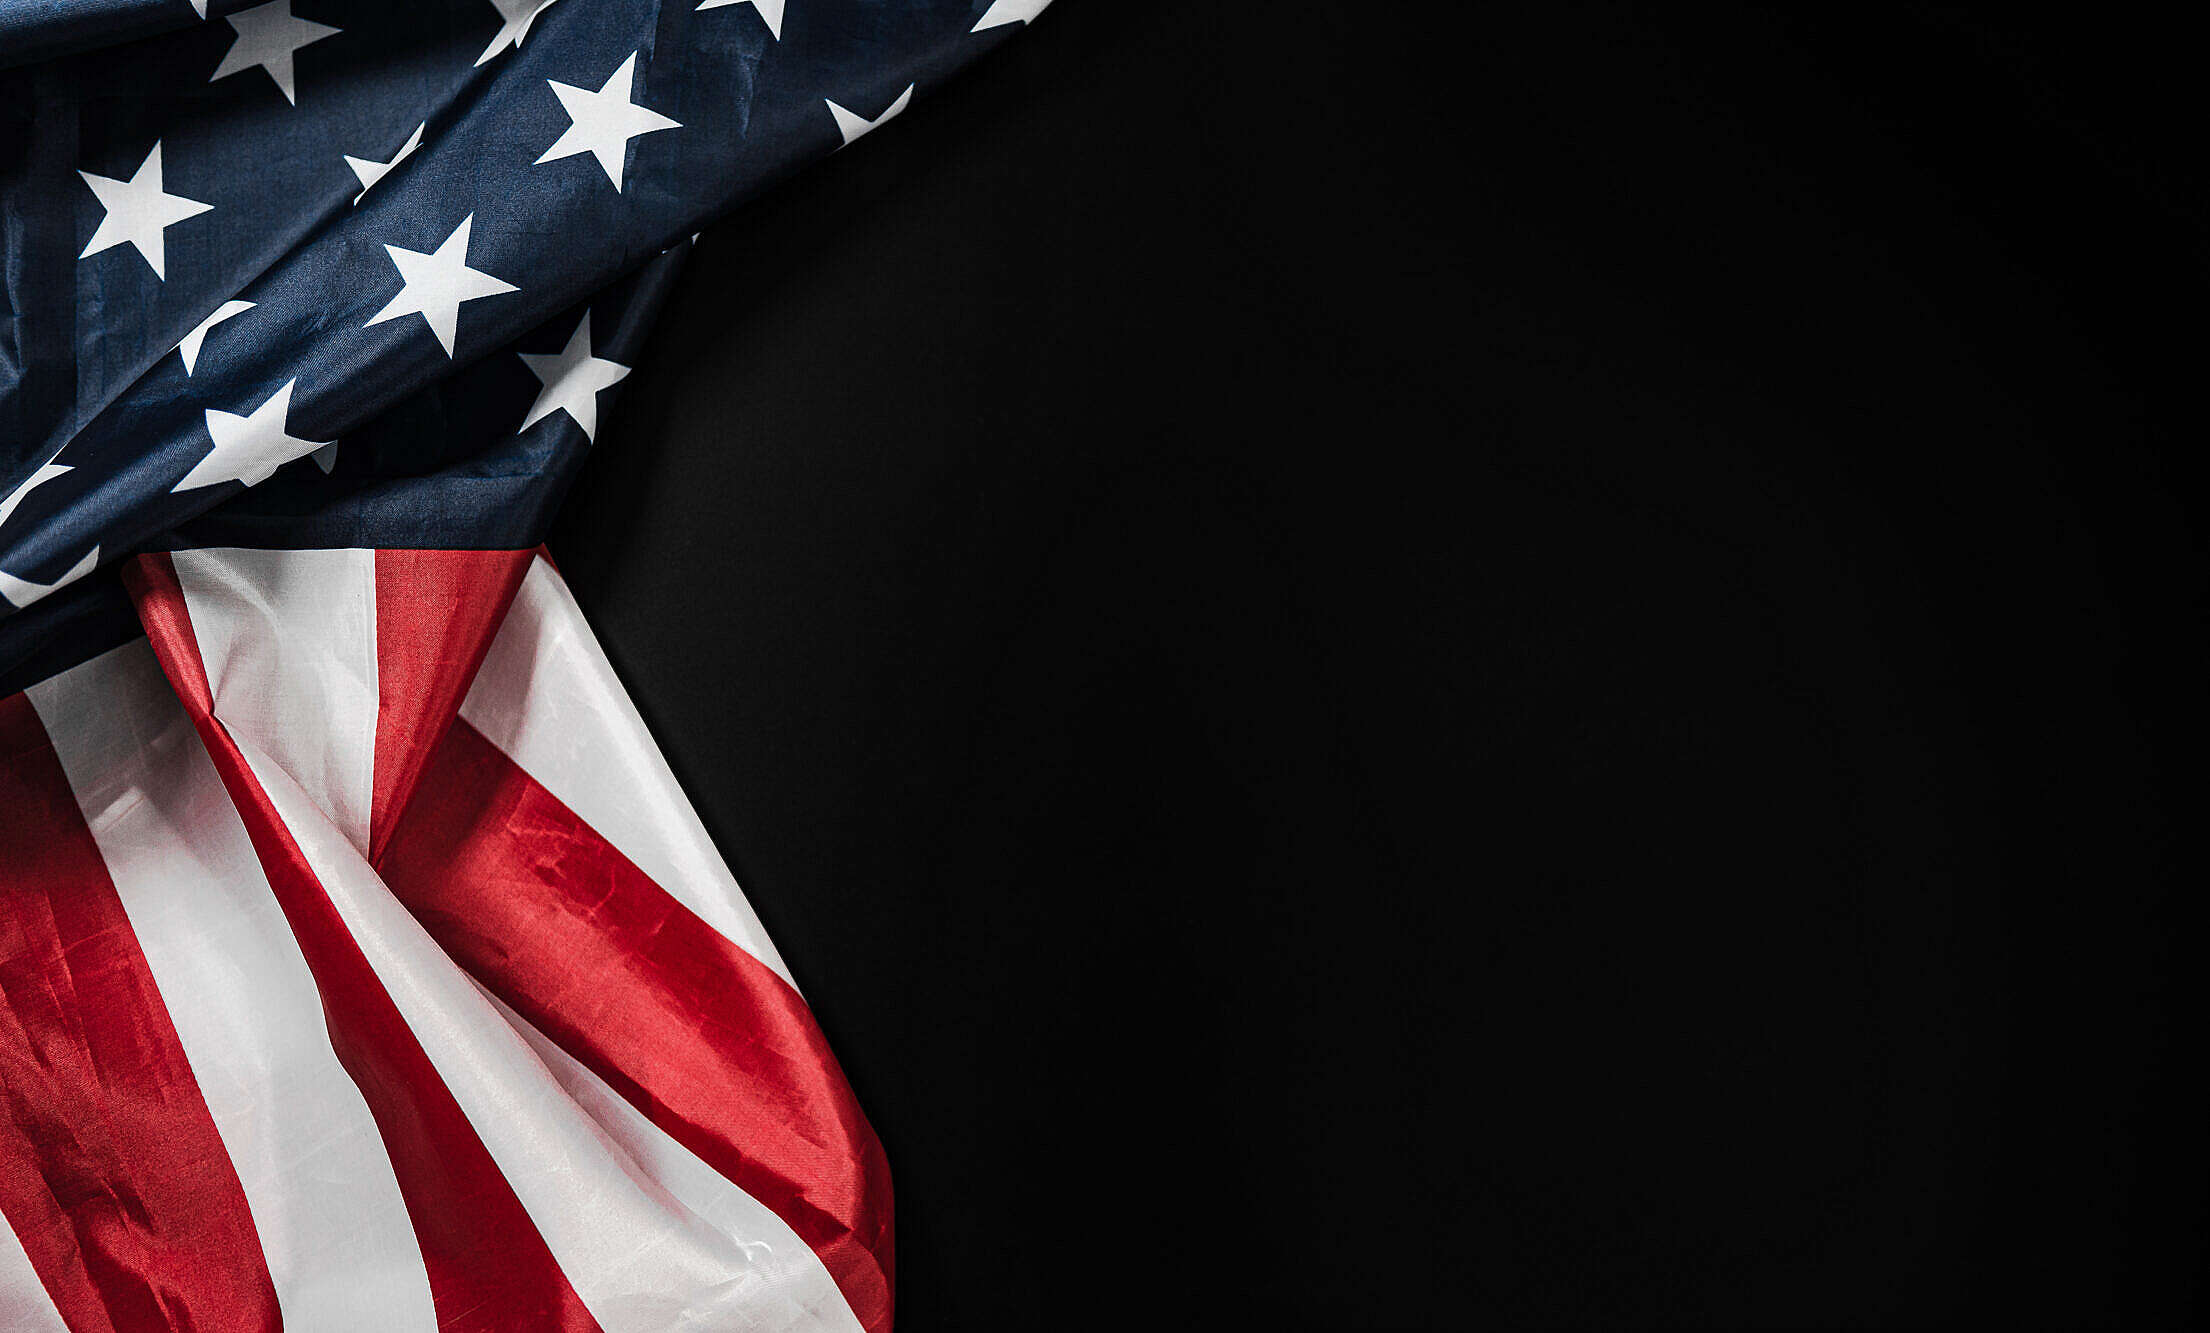 American Flag on a Black Background Free Stock Photo